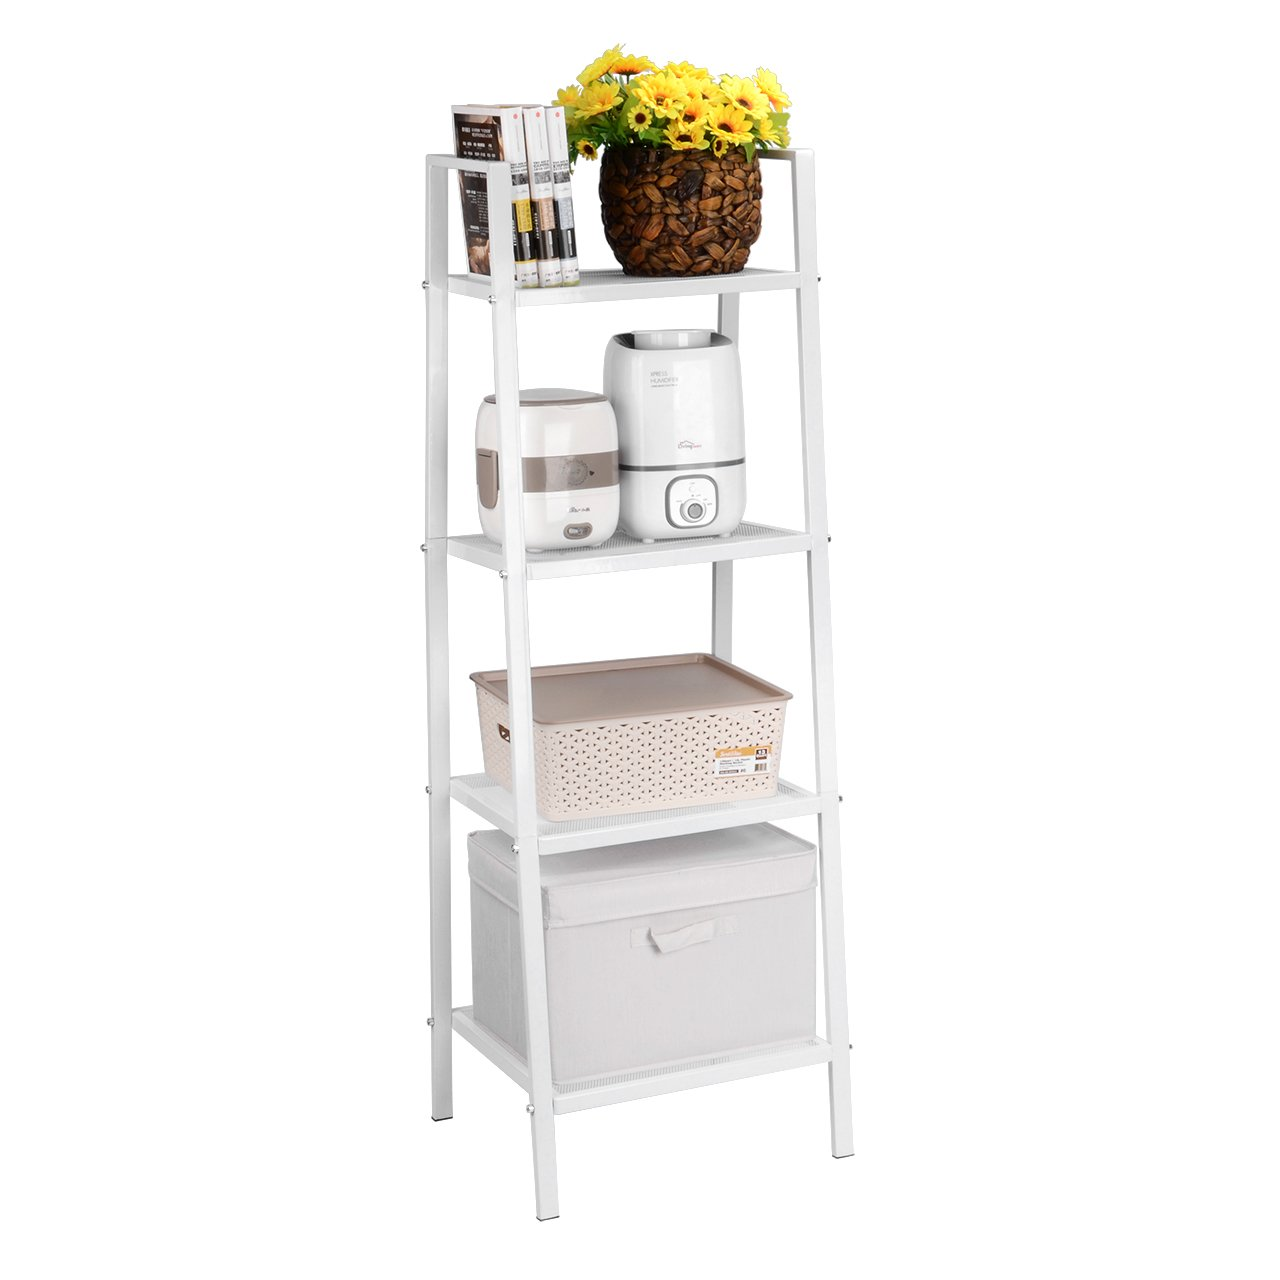 SortWise Heavy Duty Metal Ladder Shelf Bookshelf Bookcase Leaning Storage Rack A Frame Corner Display Plant Shelving Balcony Multiple Flower Pot Storage (3 Tier)